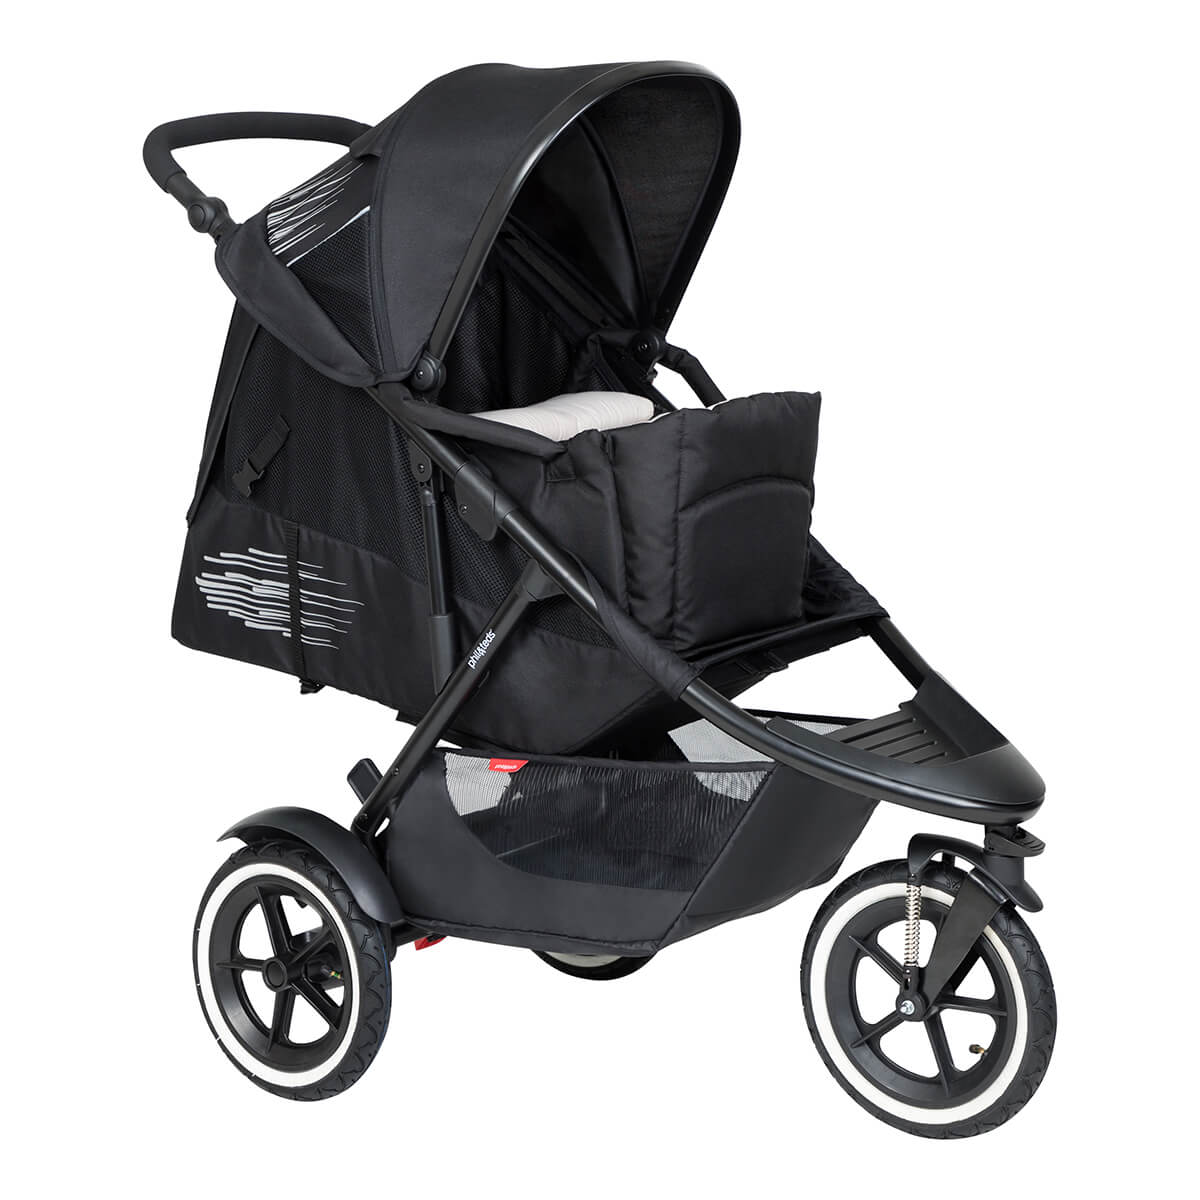 https://cdn.accentuate.io/4394651156568/19272668119128/philteds-sport-buggy-with-cocoon-full-recline-v1626484291798.jpg?1200x1200